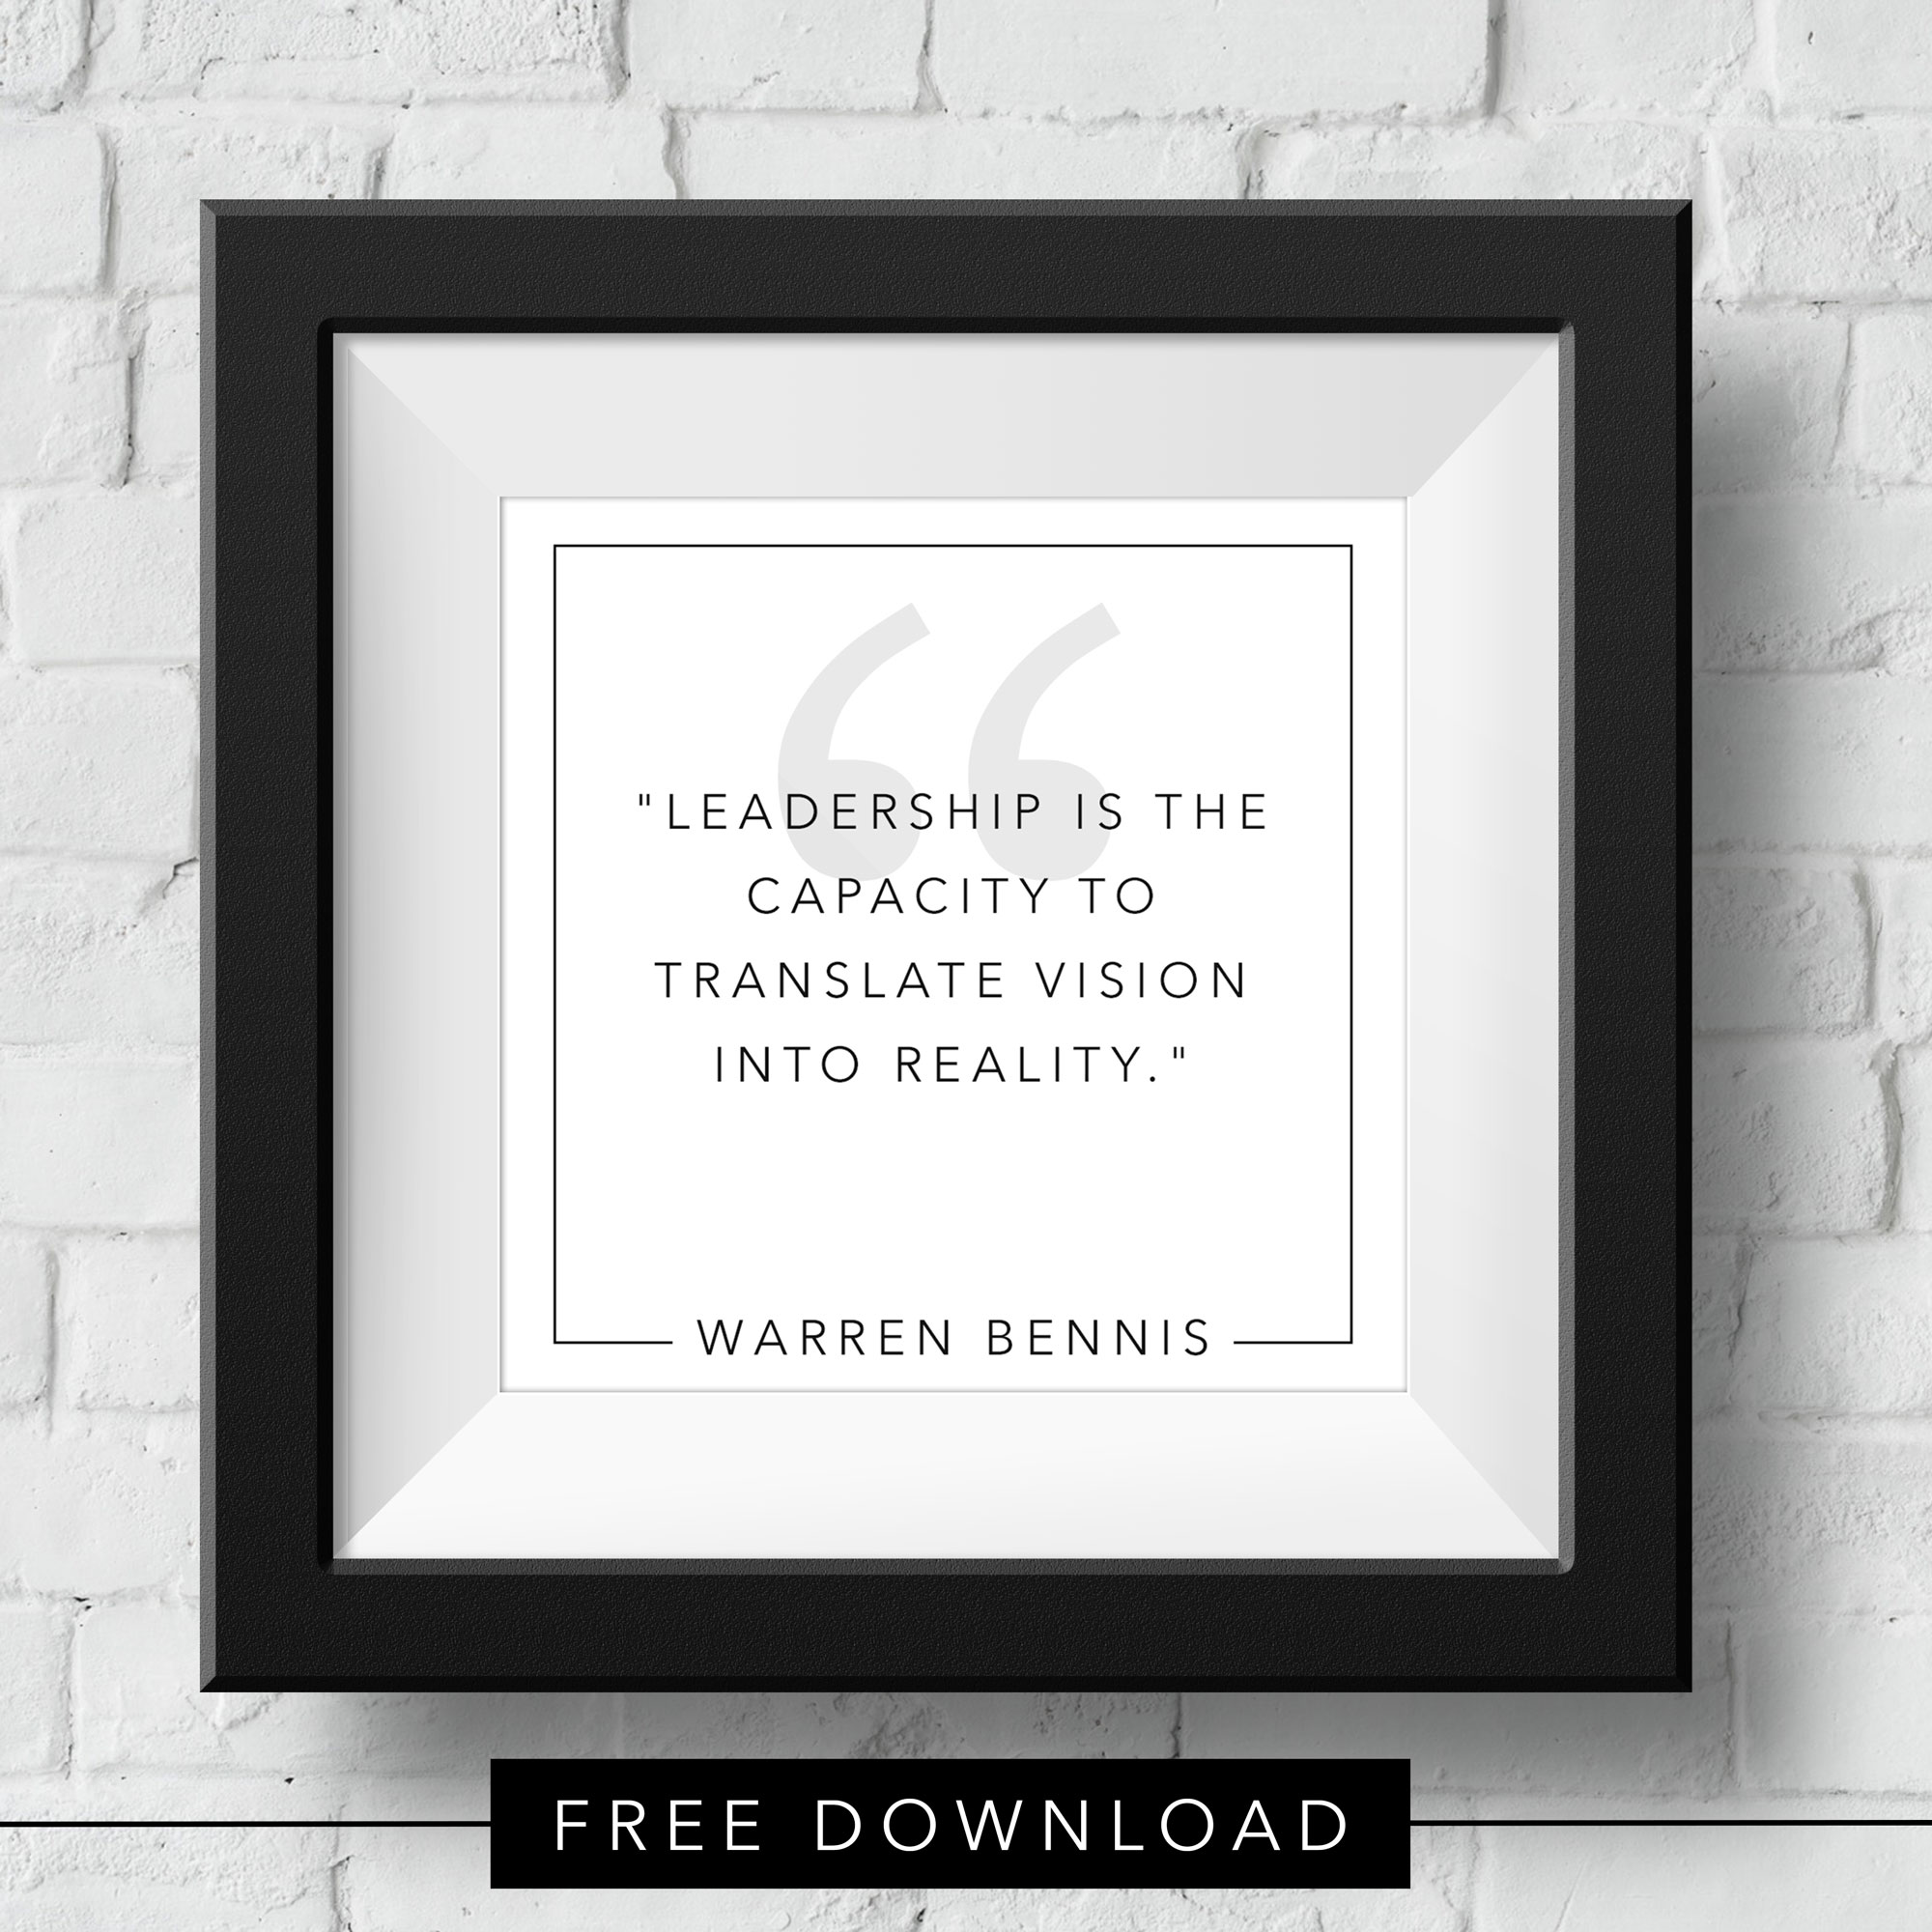 leadership-warren-bennis-free-download